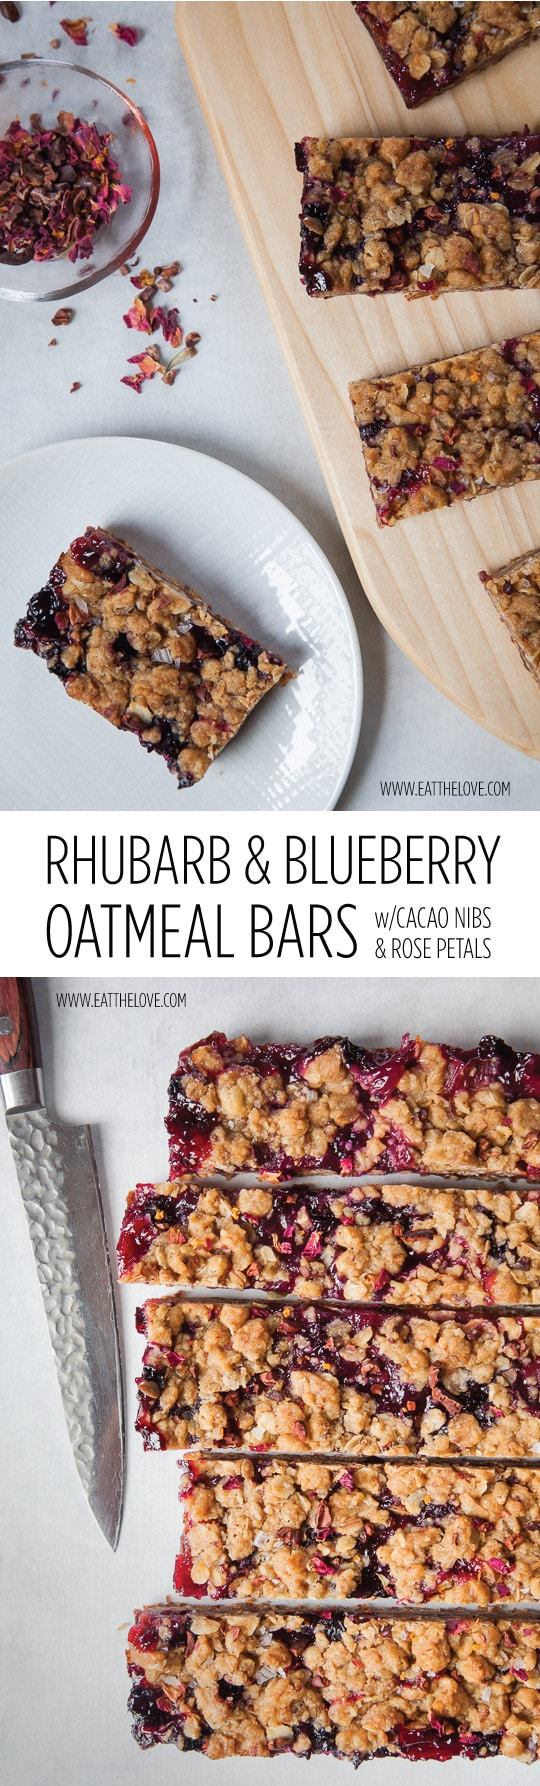 Easy to Make Rhubarb & Blueberry Oatmeal Bars with Cacao Nibs and Rose Petals. Recipe and photo by Irvin Lin of Eat the Love.